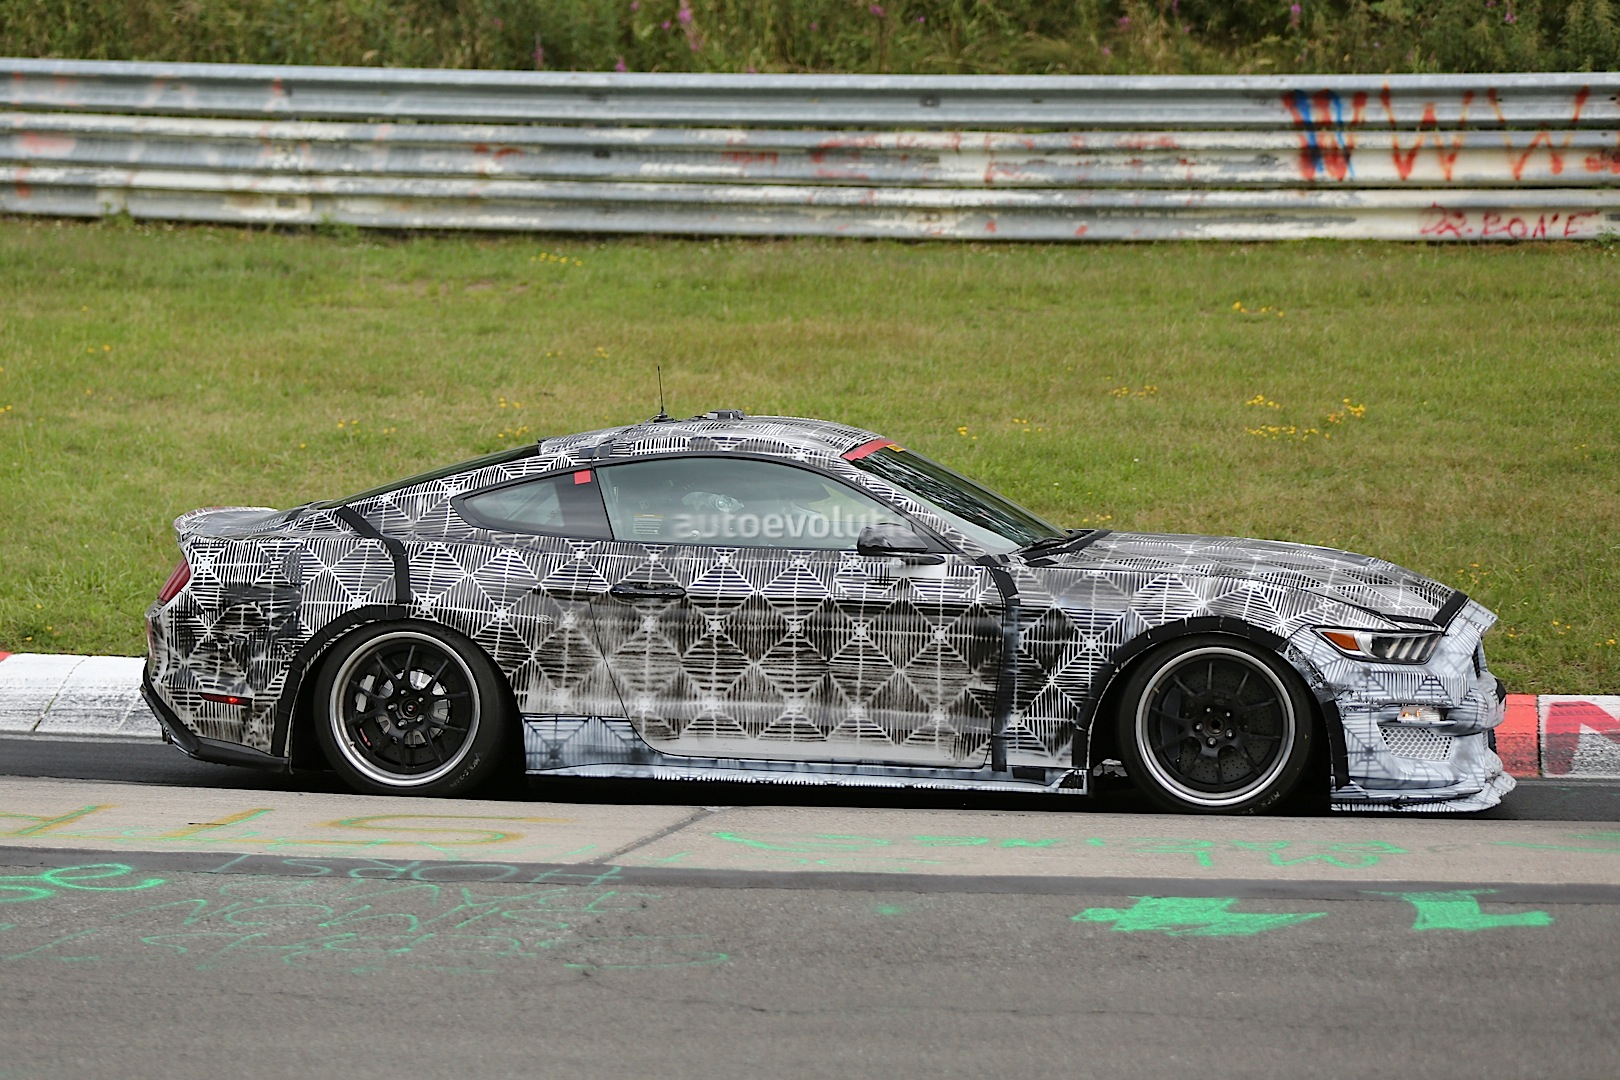 2016 Ford Mustang Shelby Gt350 Spied Wearing Less Disguise Photo Gallery 1080P 5